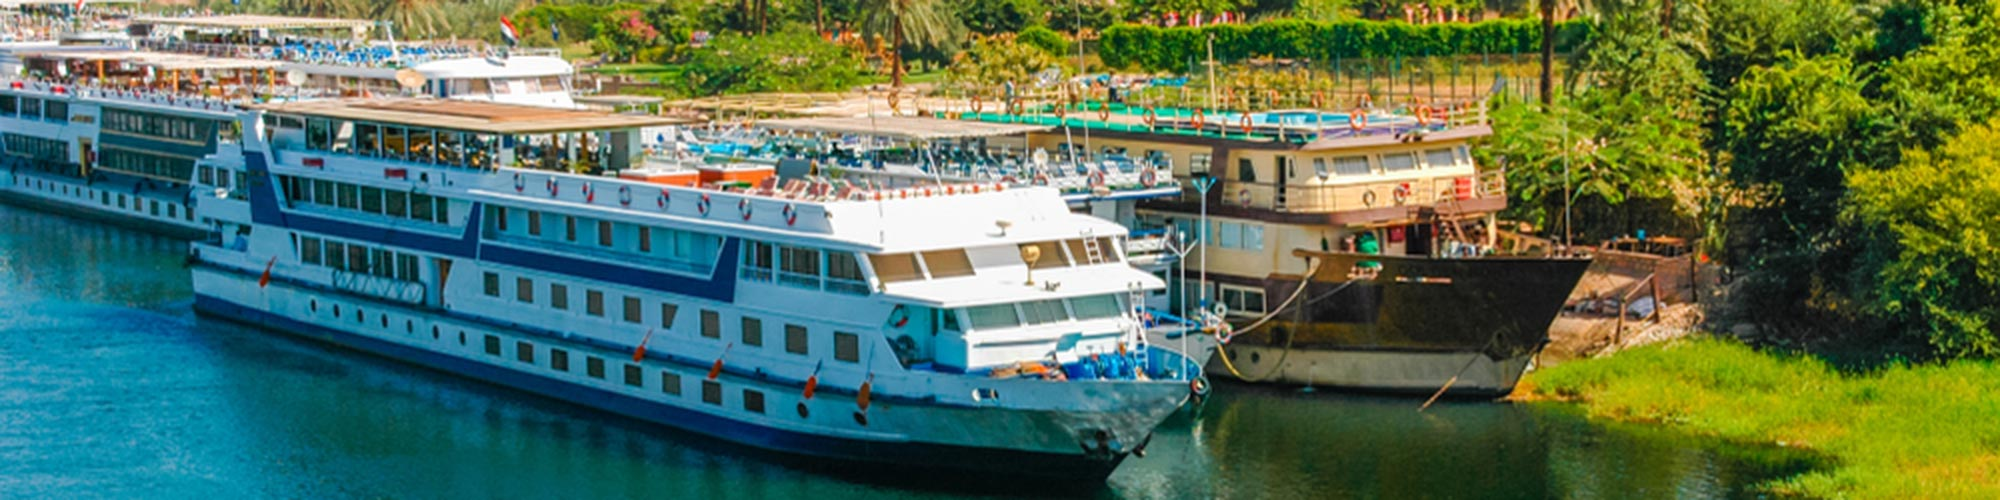 Nile Cruise - Makadi Excursions - Tours from Hurghada